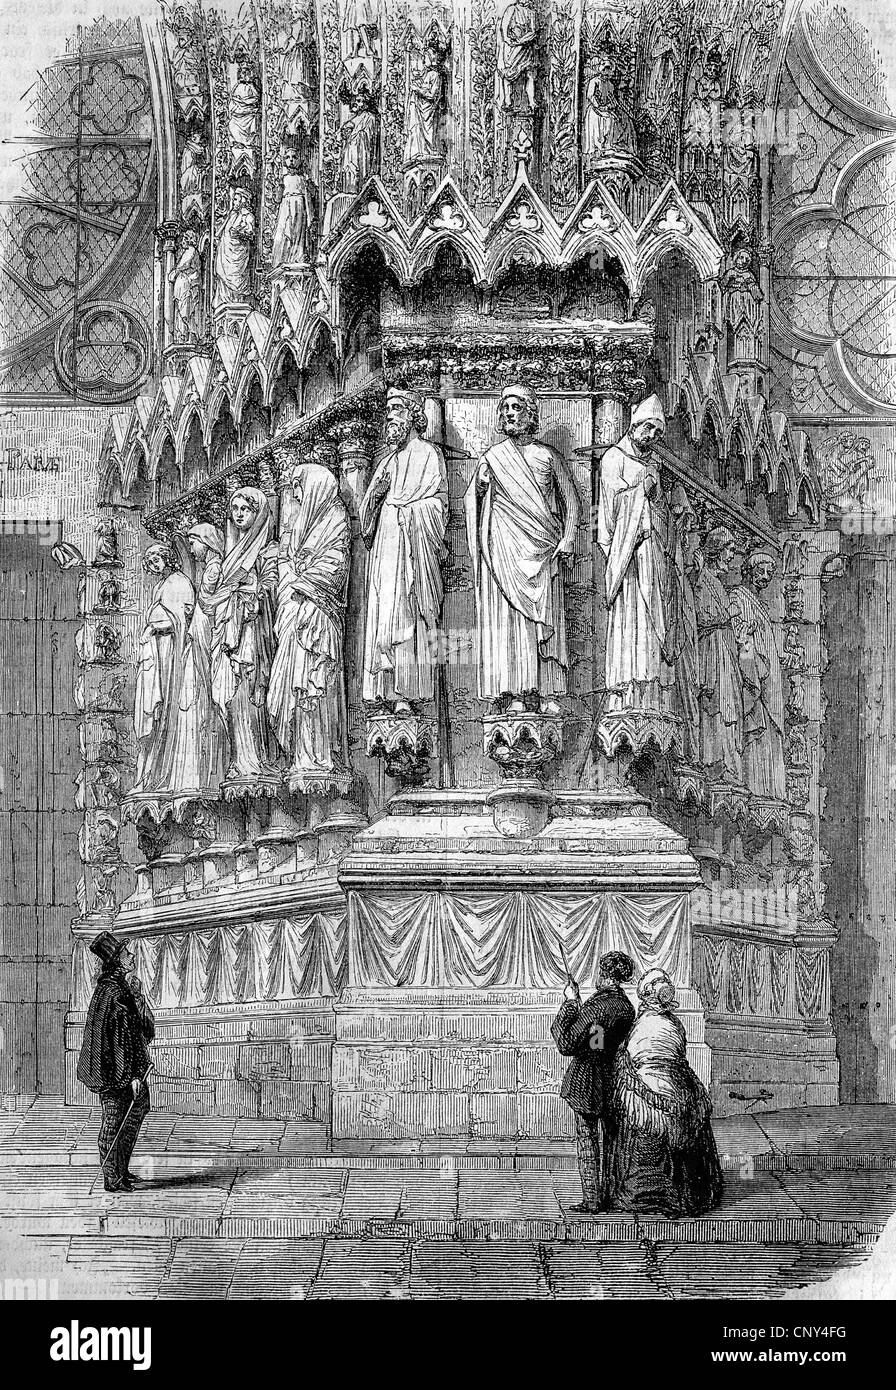 Portal of Reims Cathedral, France, historical wood engraving, circa 1888 - Stock Image